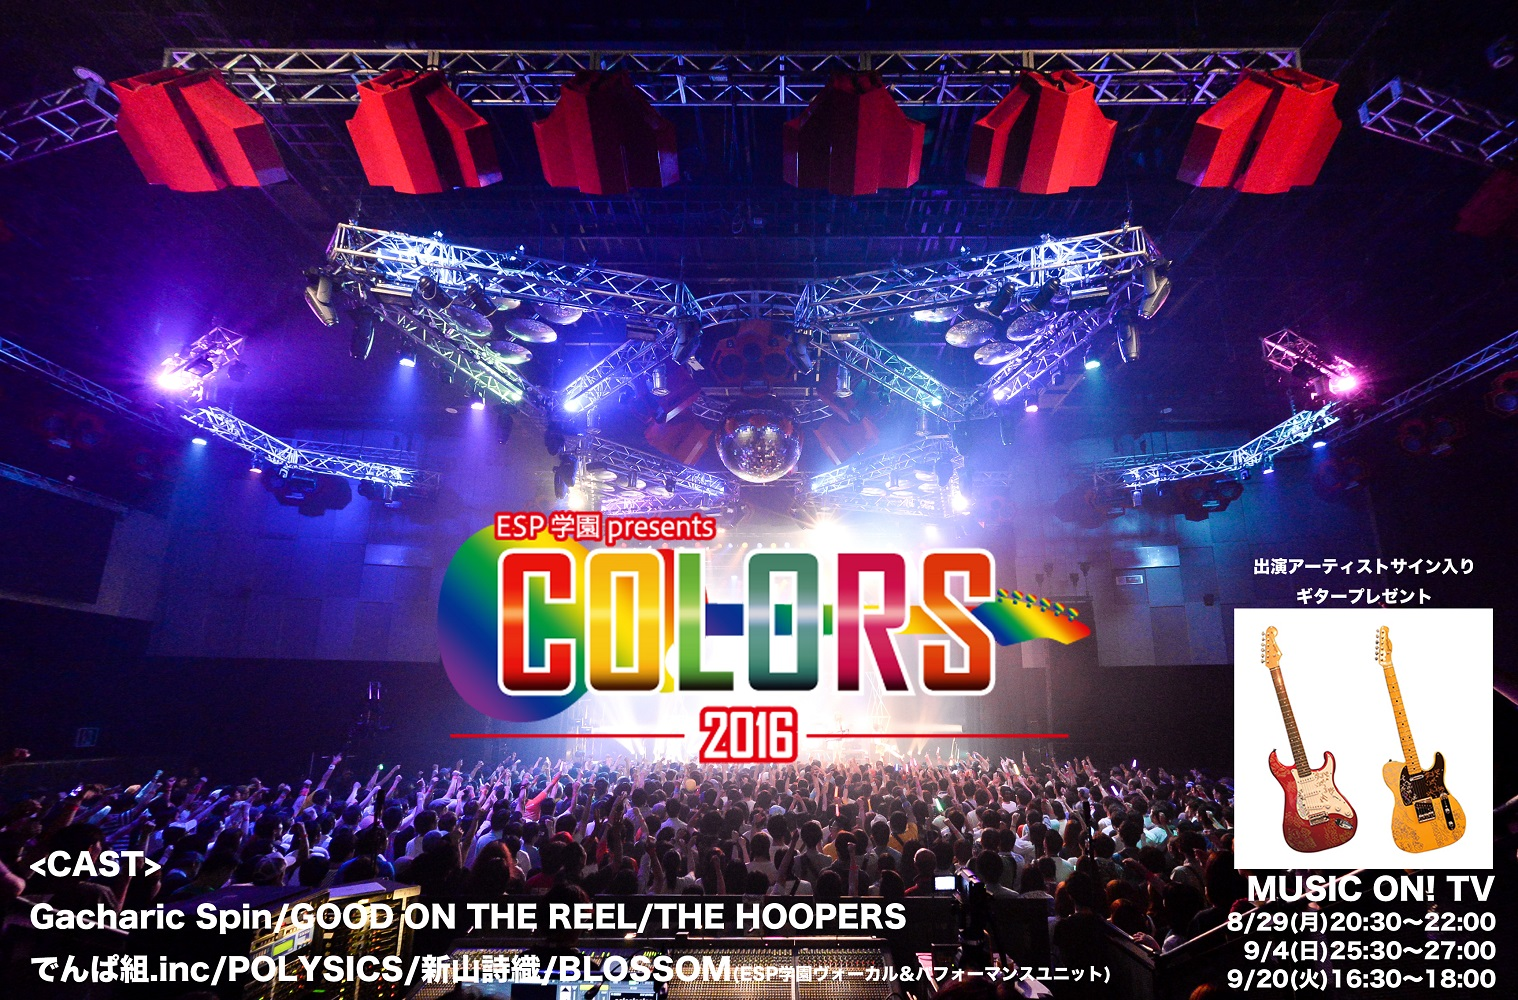 『ESP学園presents COLORS2016』